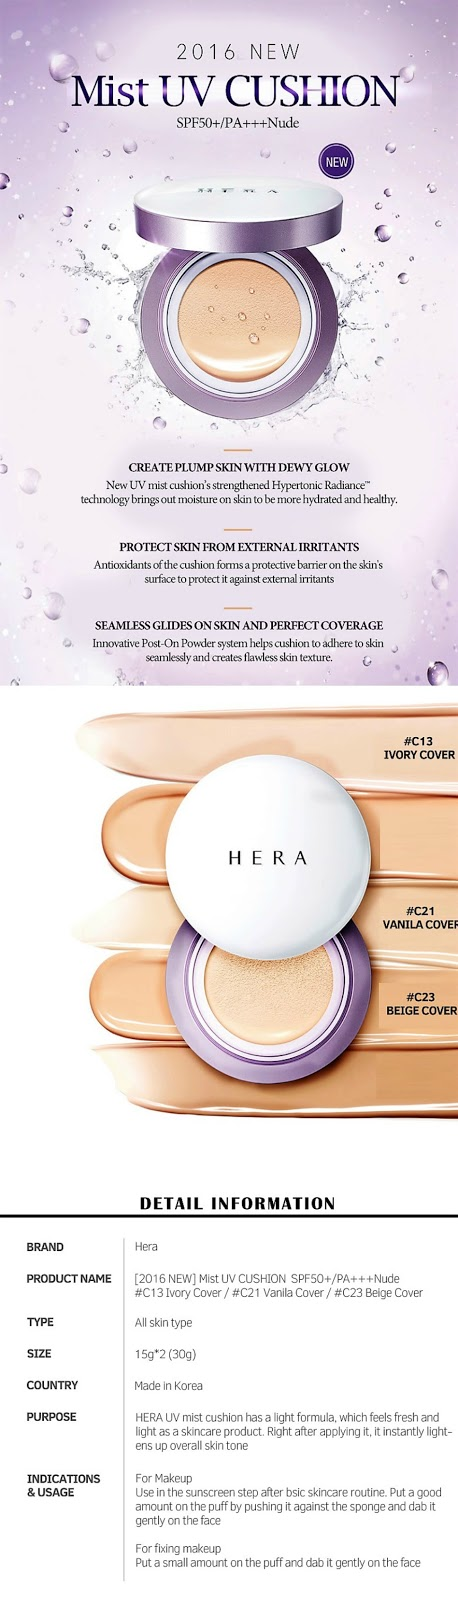 hera uv mist cushion cover poshmakeupnstuff.blogspot.com